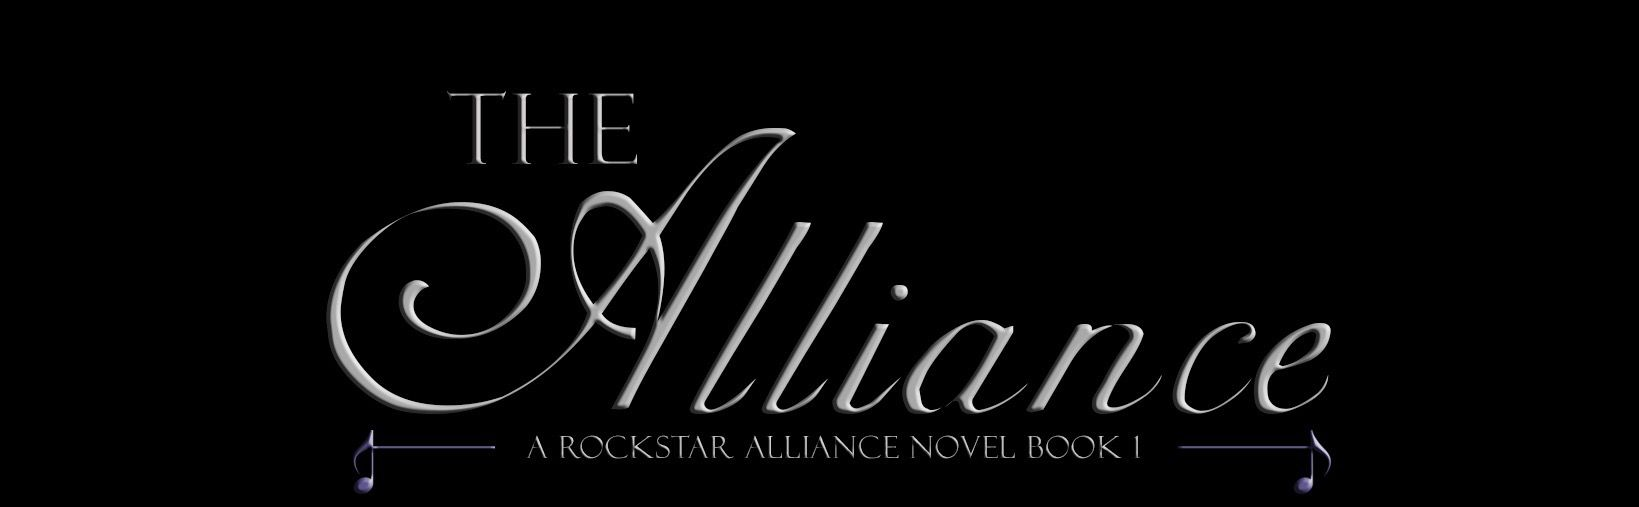 The Alliance Book 1.  One Continuous Rockstar Timeline. Fourteen Surrounded By Fame. Seven Bonded Brothers. Seven Female Best Friends.  #ClareMarie #TheAlliance #Ivy&Kayden #TheRockstarAllianceSeries #DenyMe #Love #Fame #Friendship #Brotherhood #Sisterhood #Loyalty